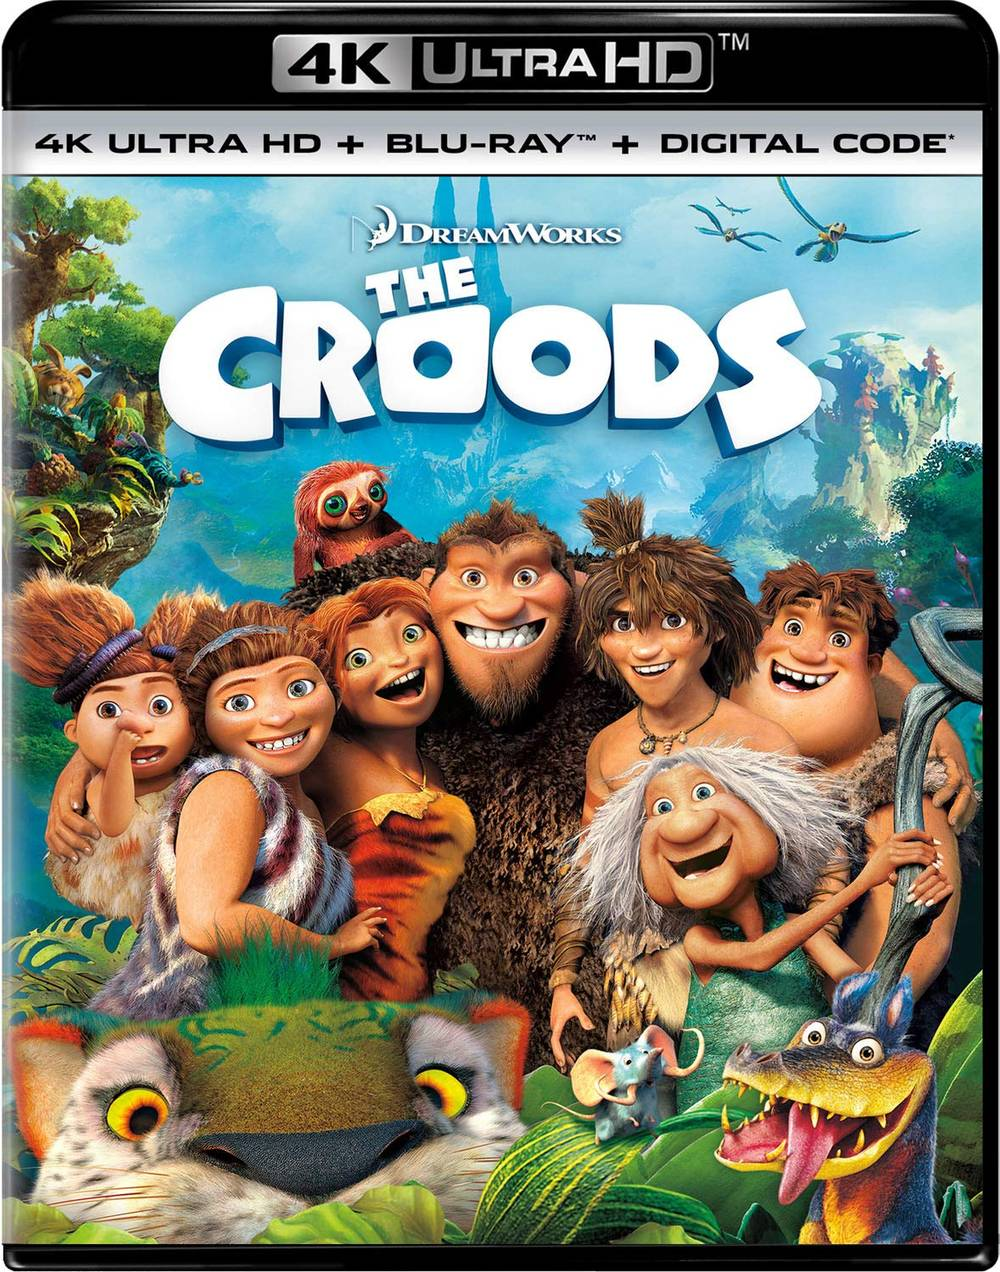 The Croods [Movie] - The Croods